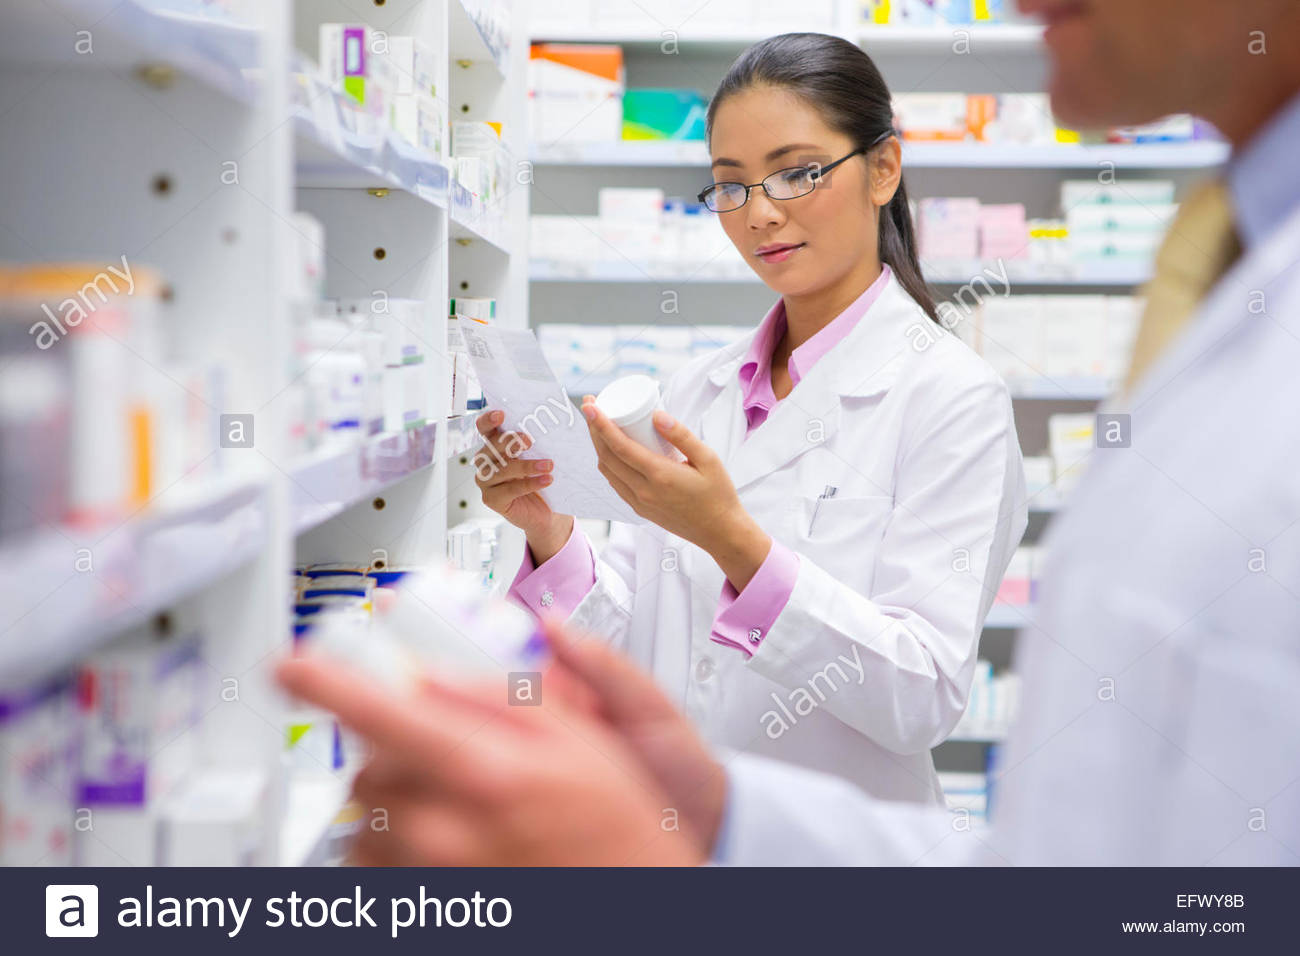 Pharmacists reading pack of medicine and prescription from pharmacy shelf - Stock Image